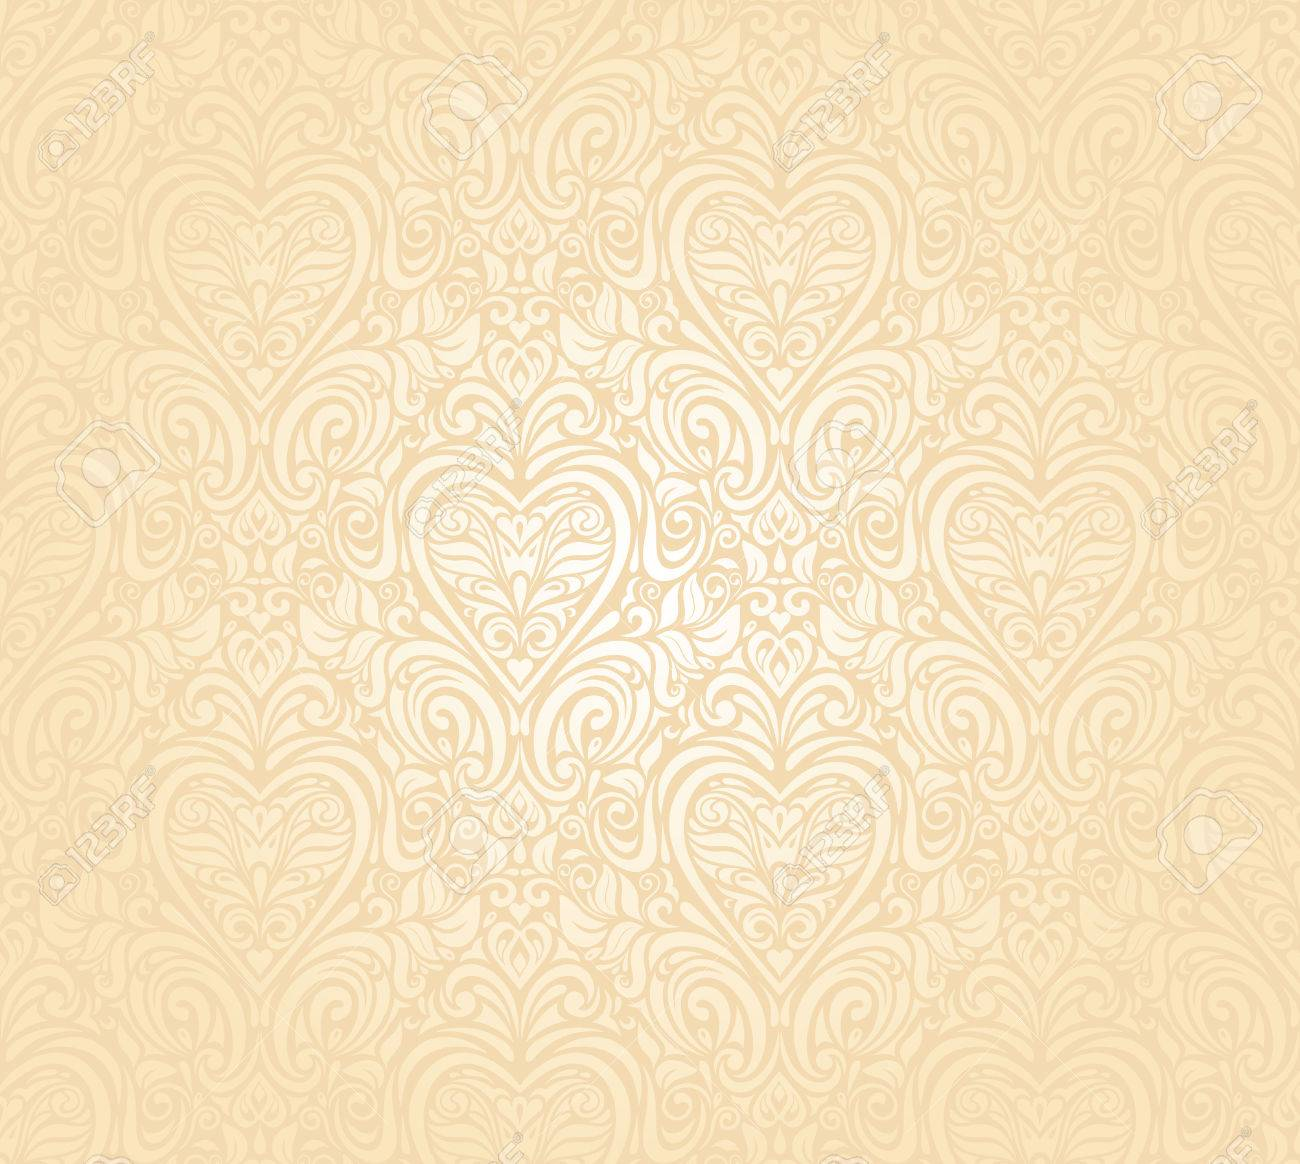 Gentle Peach Seamless Wedding Floral Background Royalty Free